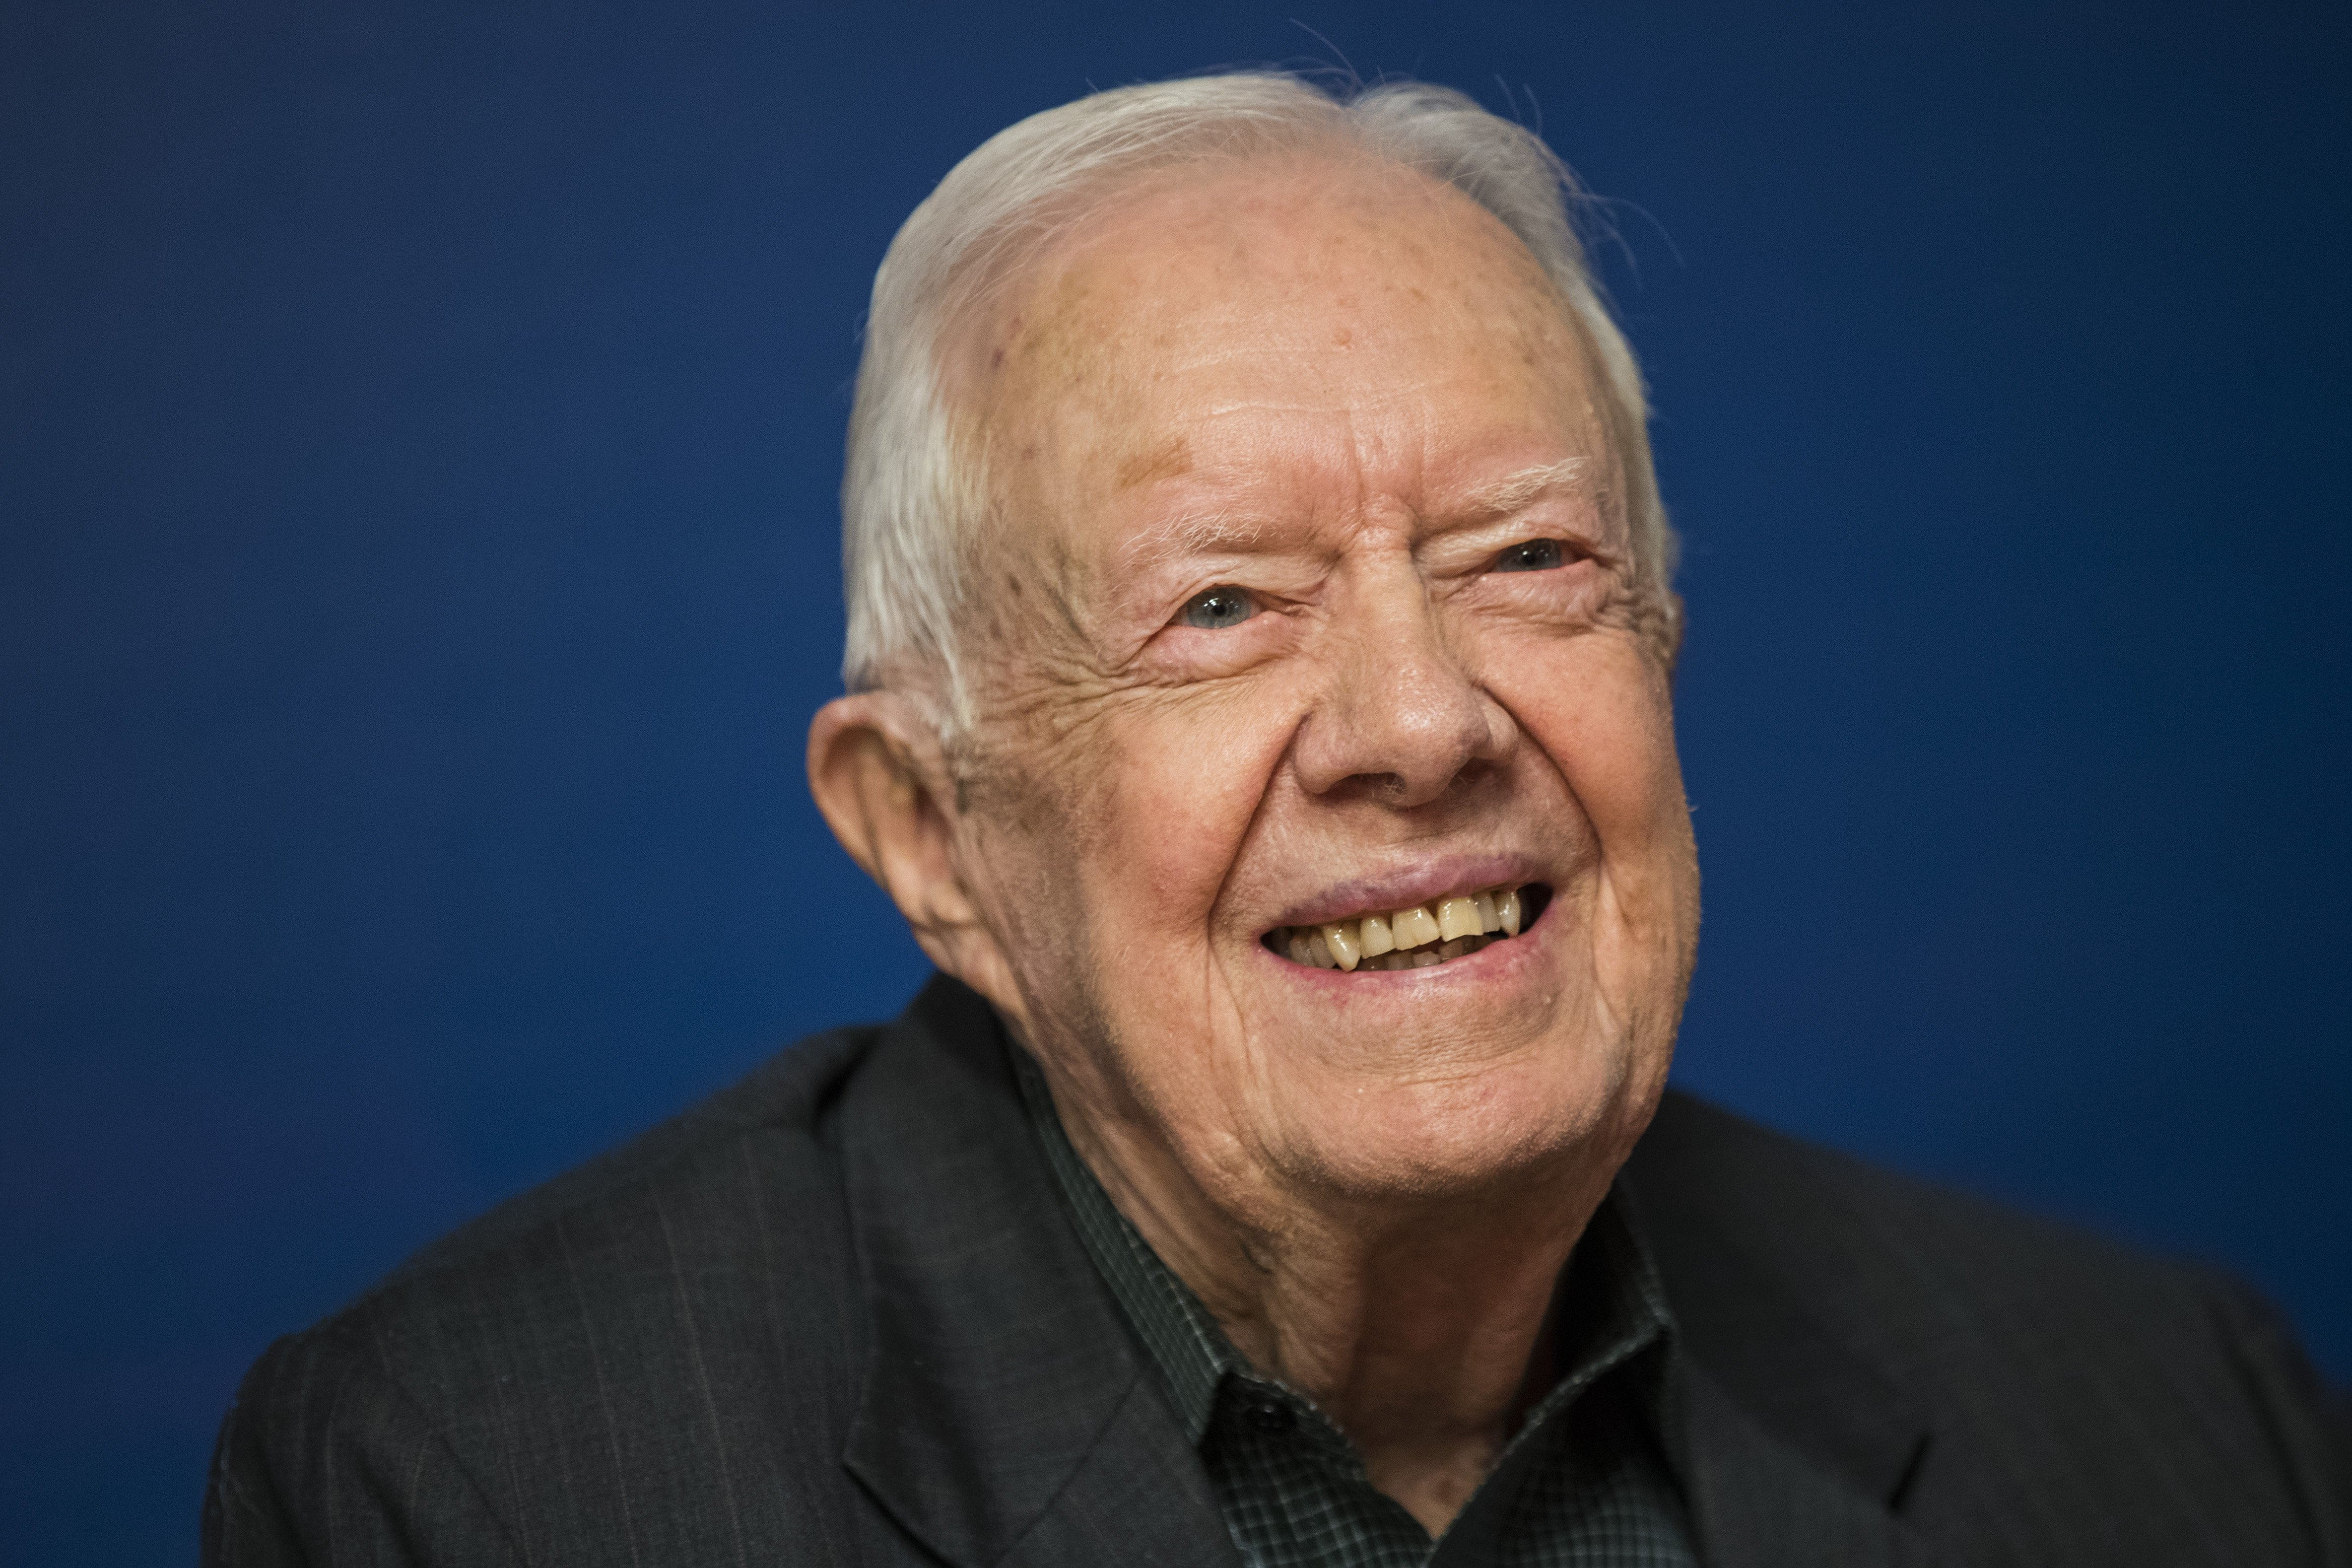 Former U.S. President Jimmy Carter smiles during a book signing event on March 26, 2018, in New York City  | Photo: Getty Images.